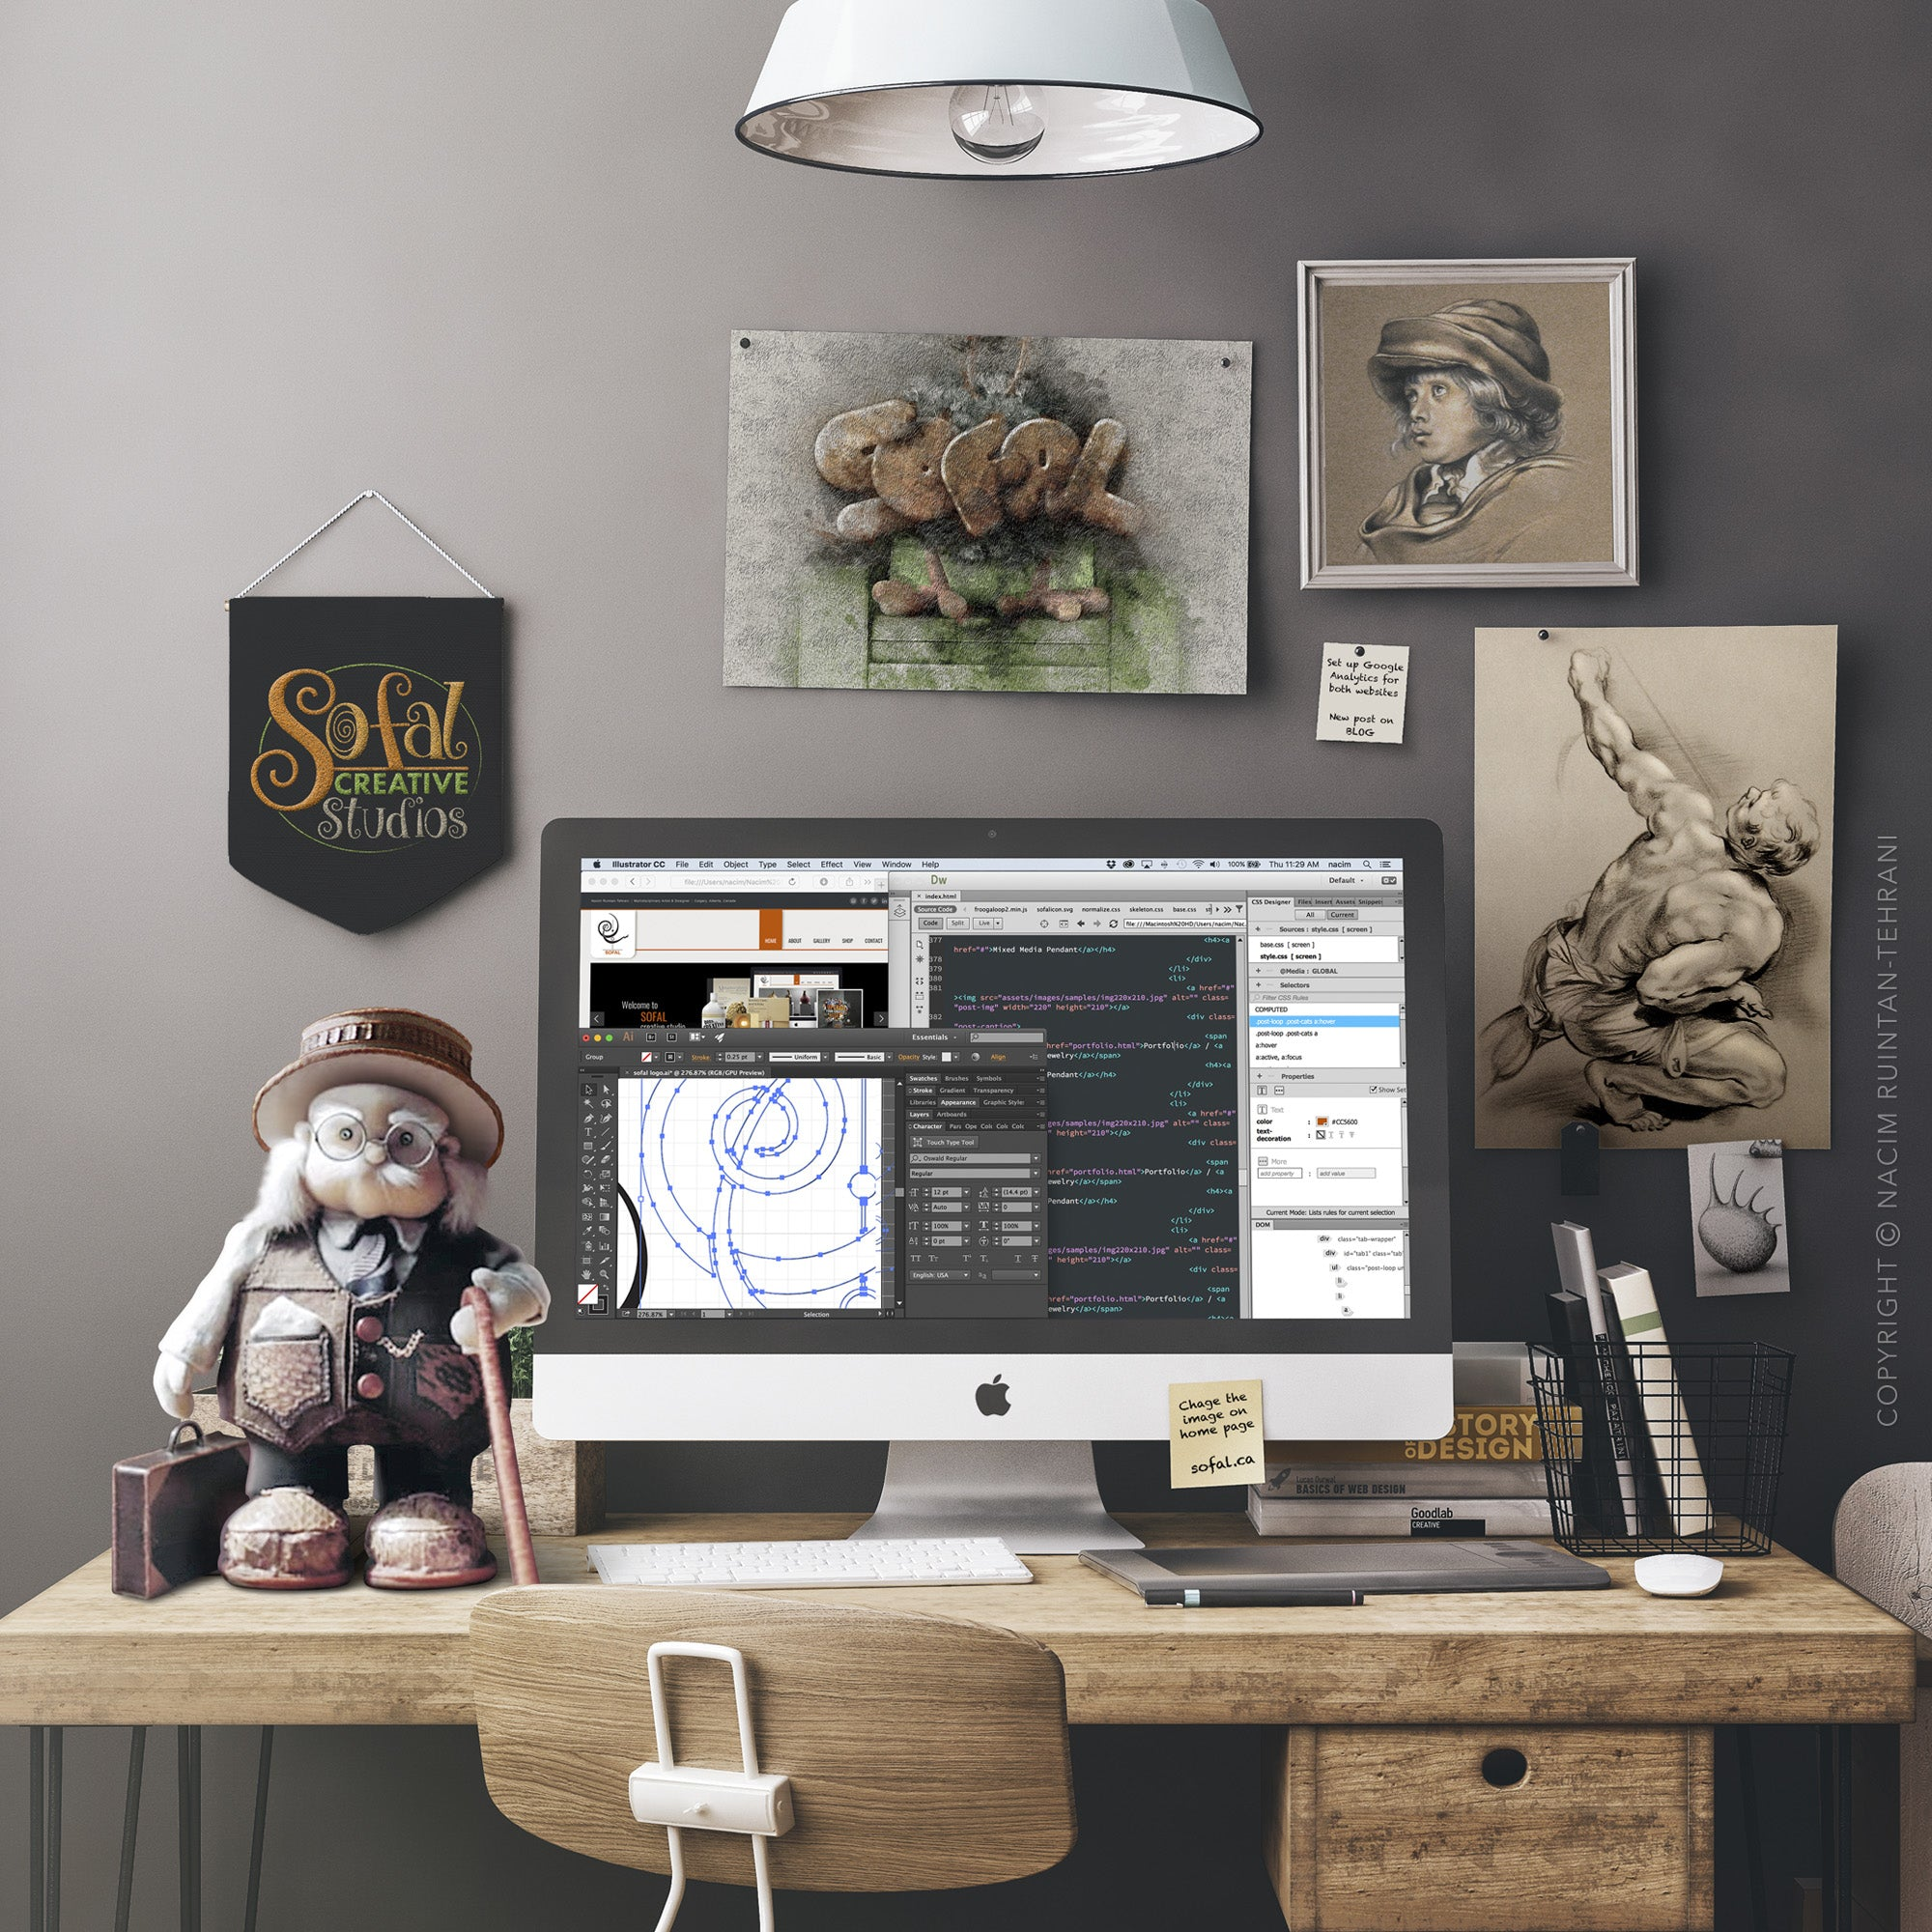 The professor, original mixed media sculpture by artist Nacim Ruintan-Tehrani, shown on a desk along with a computer and a few other items. There are a few original drawings on the wall behind the desk.